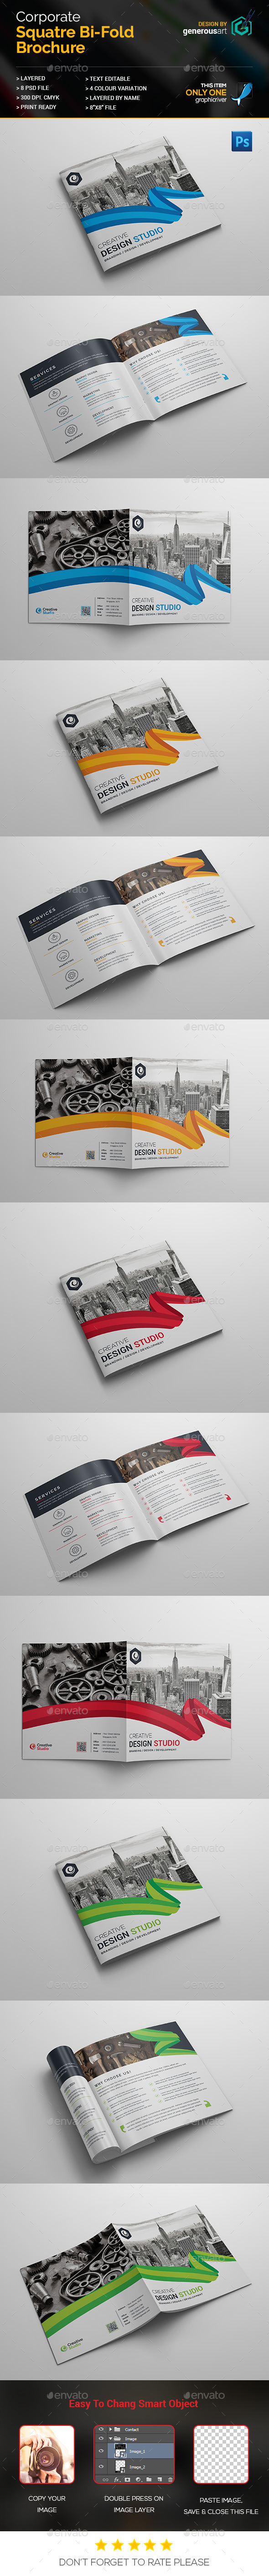 Square Bi-Fold Brochure Design - Corporate Brochures